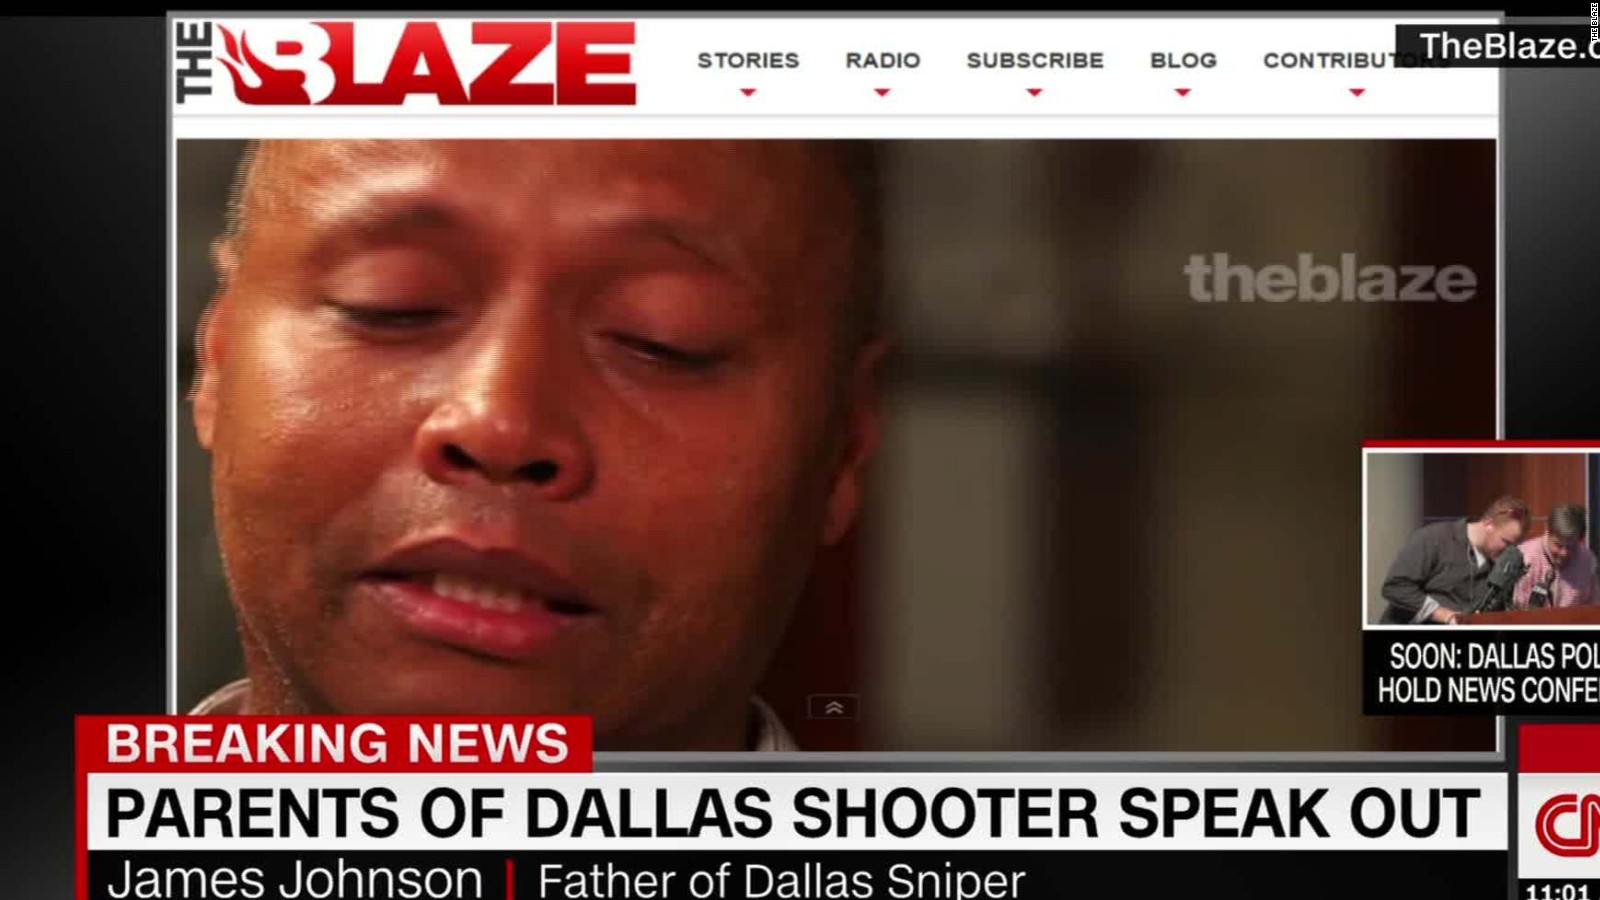 Writing in blood, threats of bombs: Latest on Dallas investigation